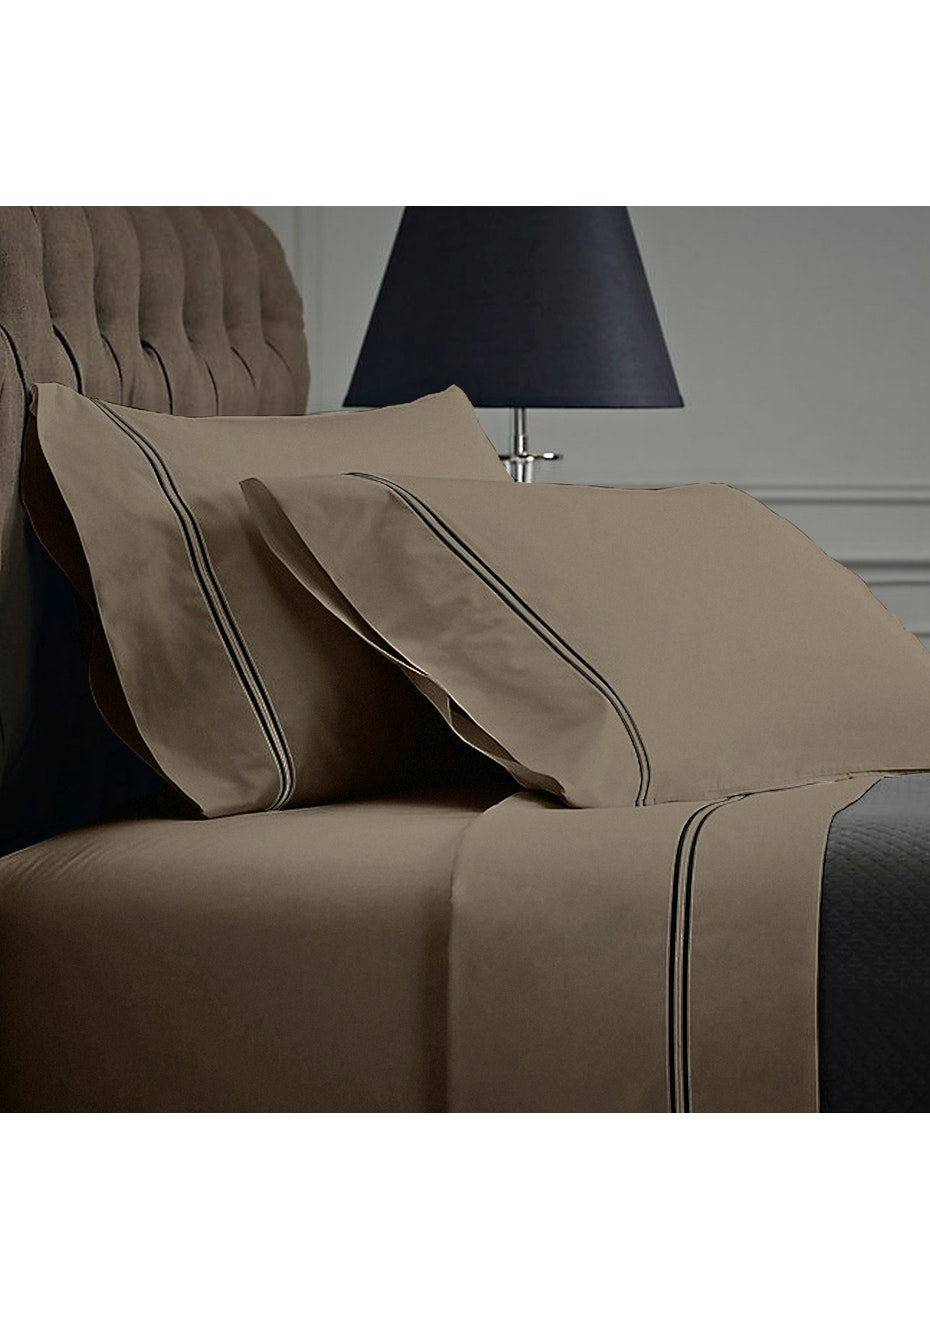 Style & Co 1000 Thread count Egyptian Cotton Hotel Collection Sorrento Sheet sets Double Linen